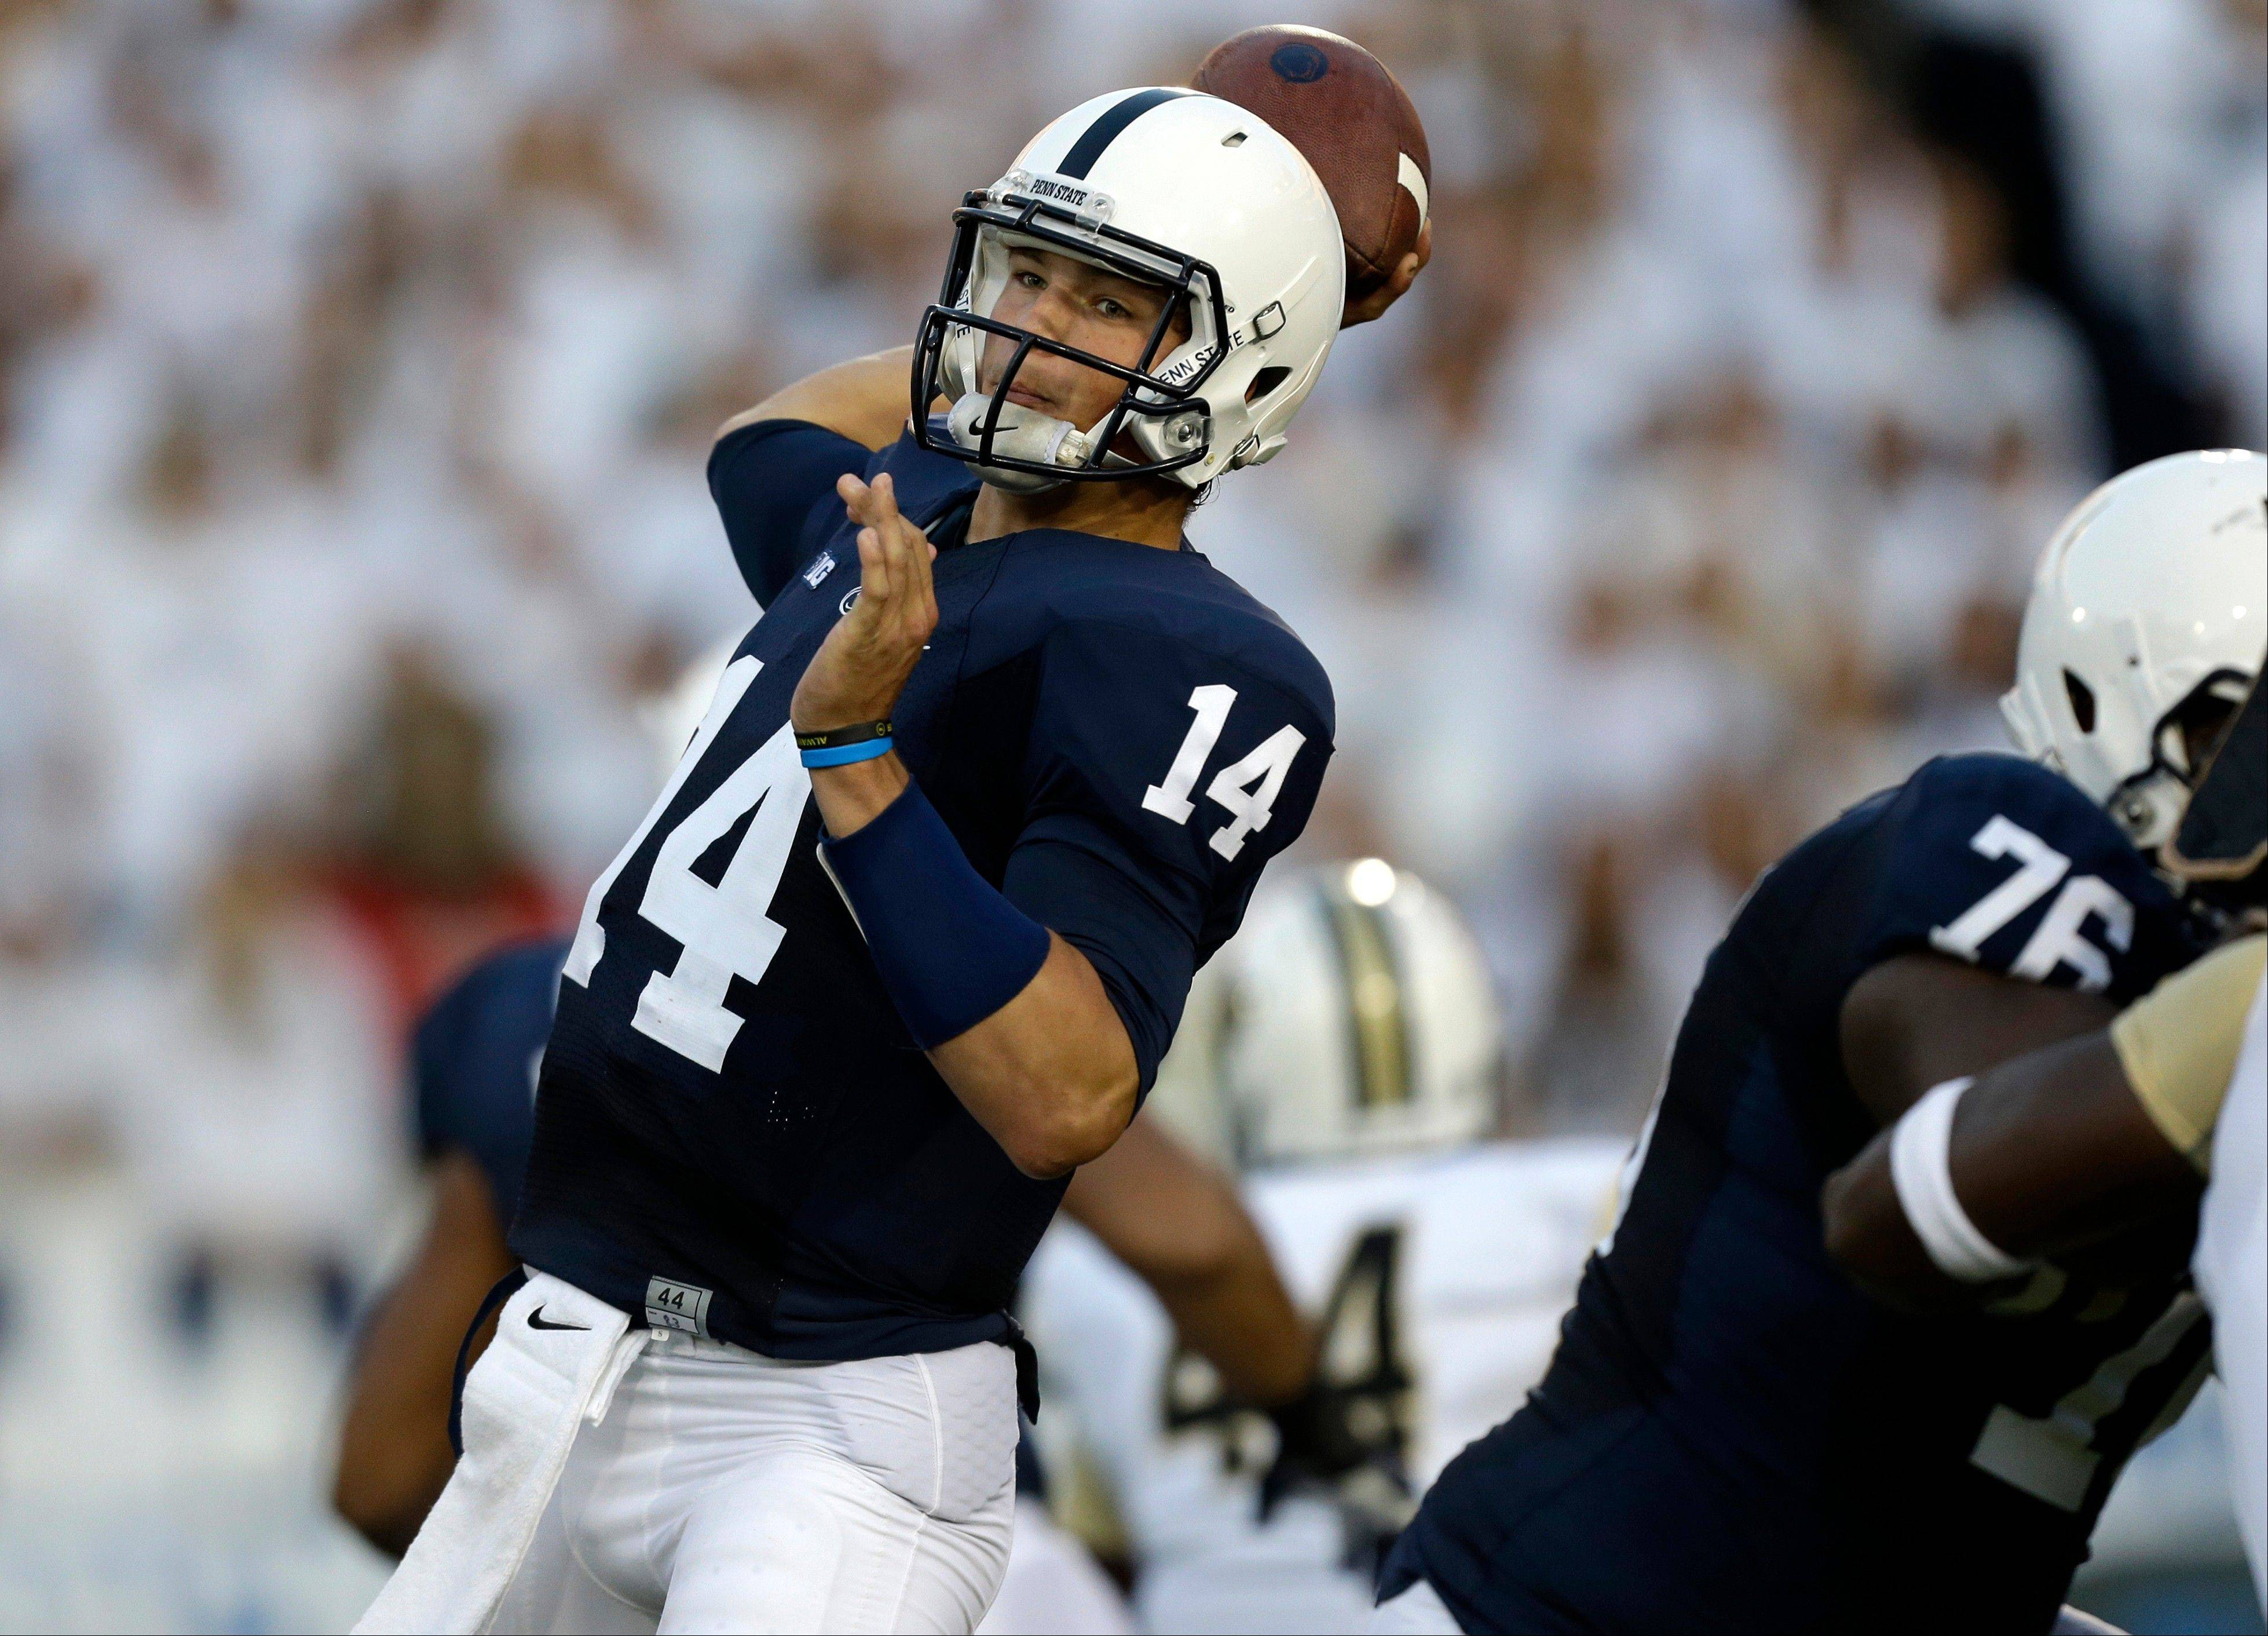 Penn State quarterback Christian Hackenberg is working this week to bounce back from his first collegiate loss, but through three weeks Nittany Lions fans have to be impressed with this freshman.